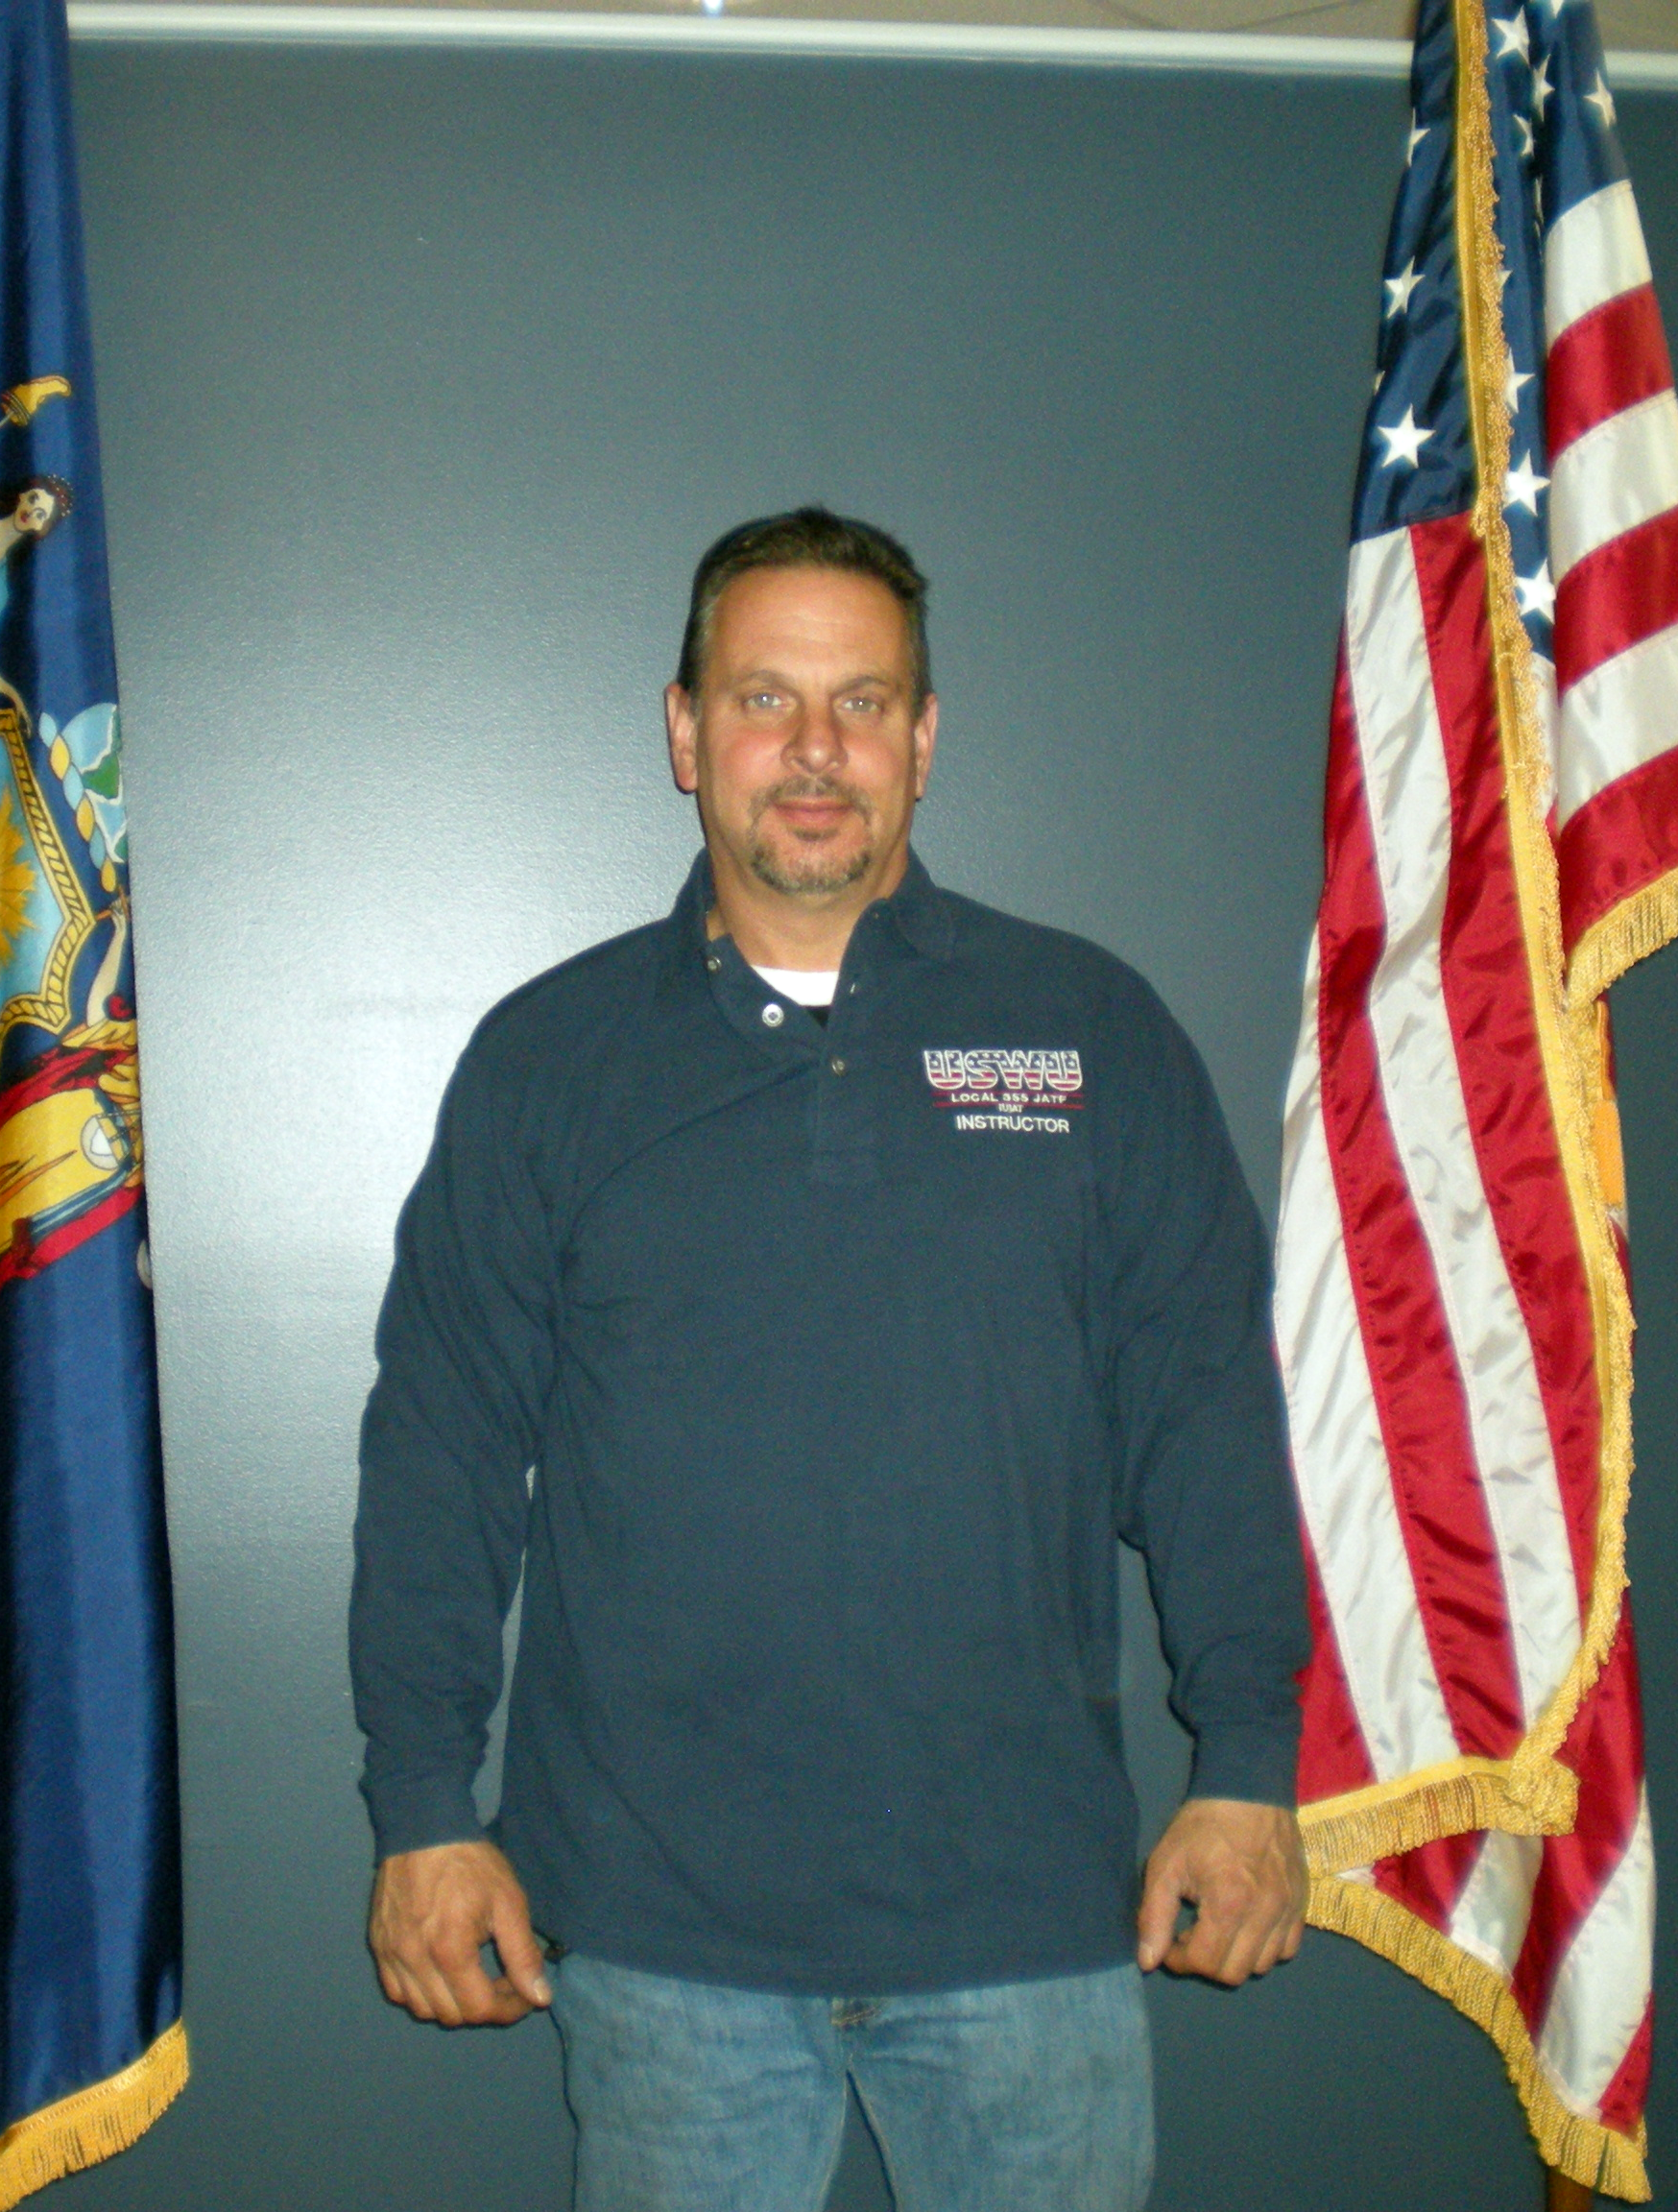 Roger Zeis, Senior Sheet Metal Instructor